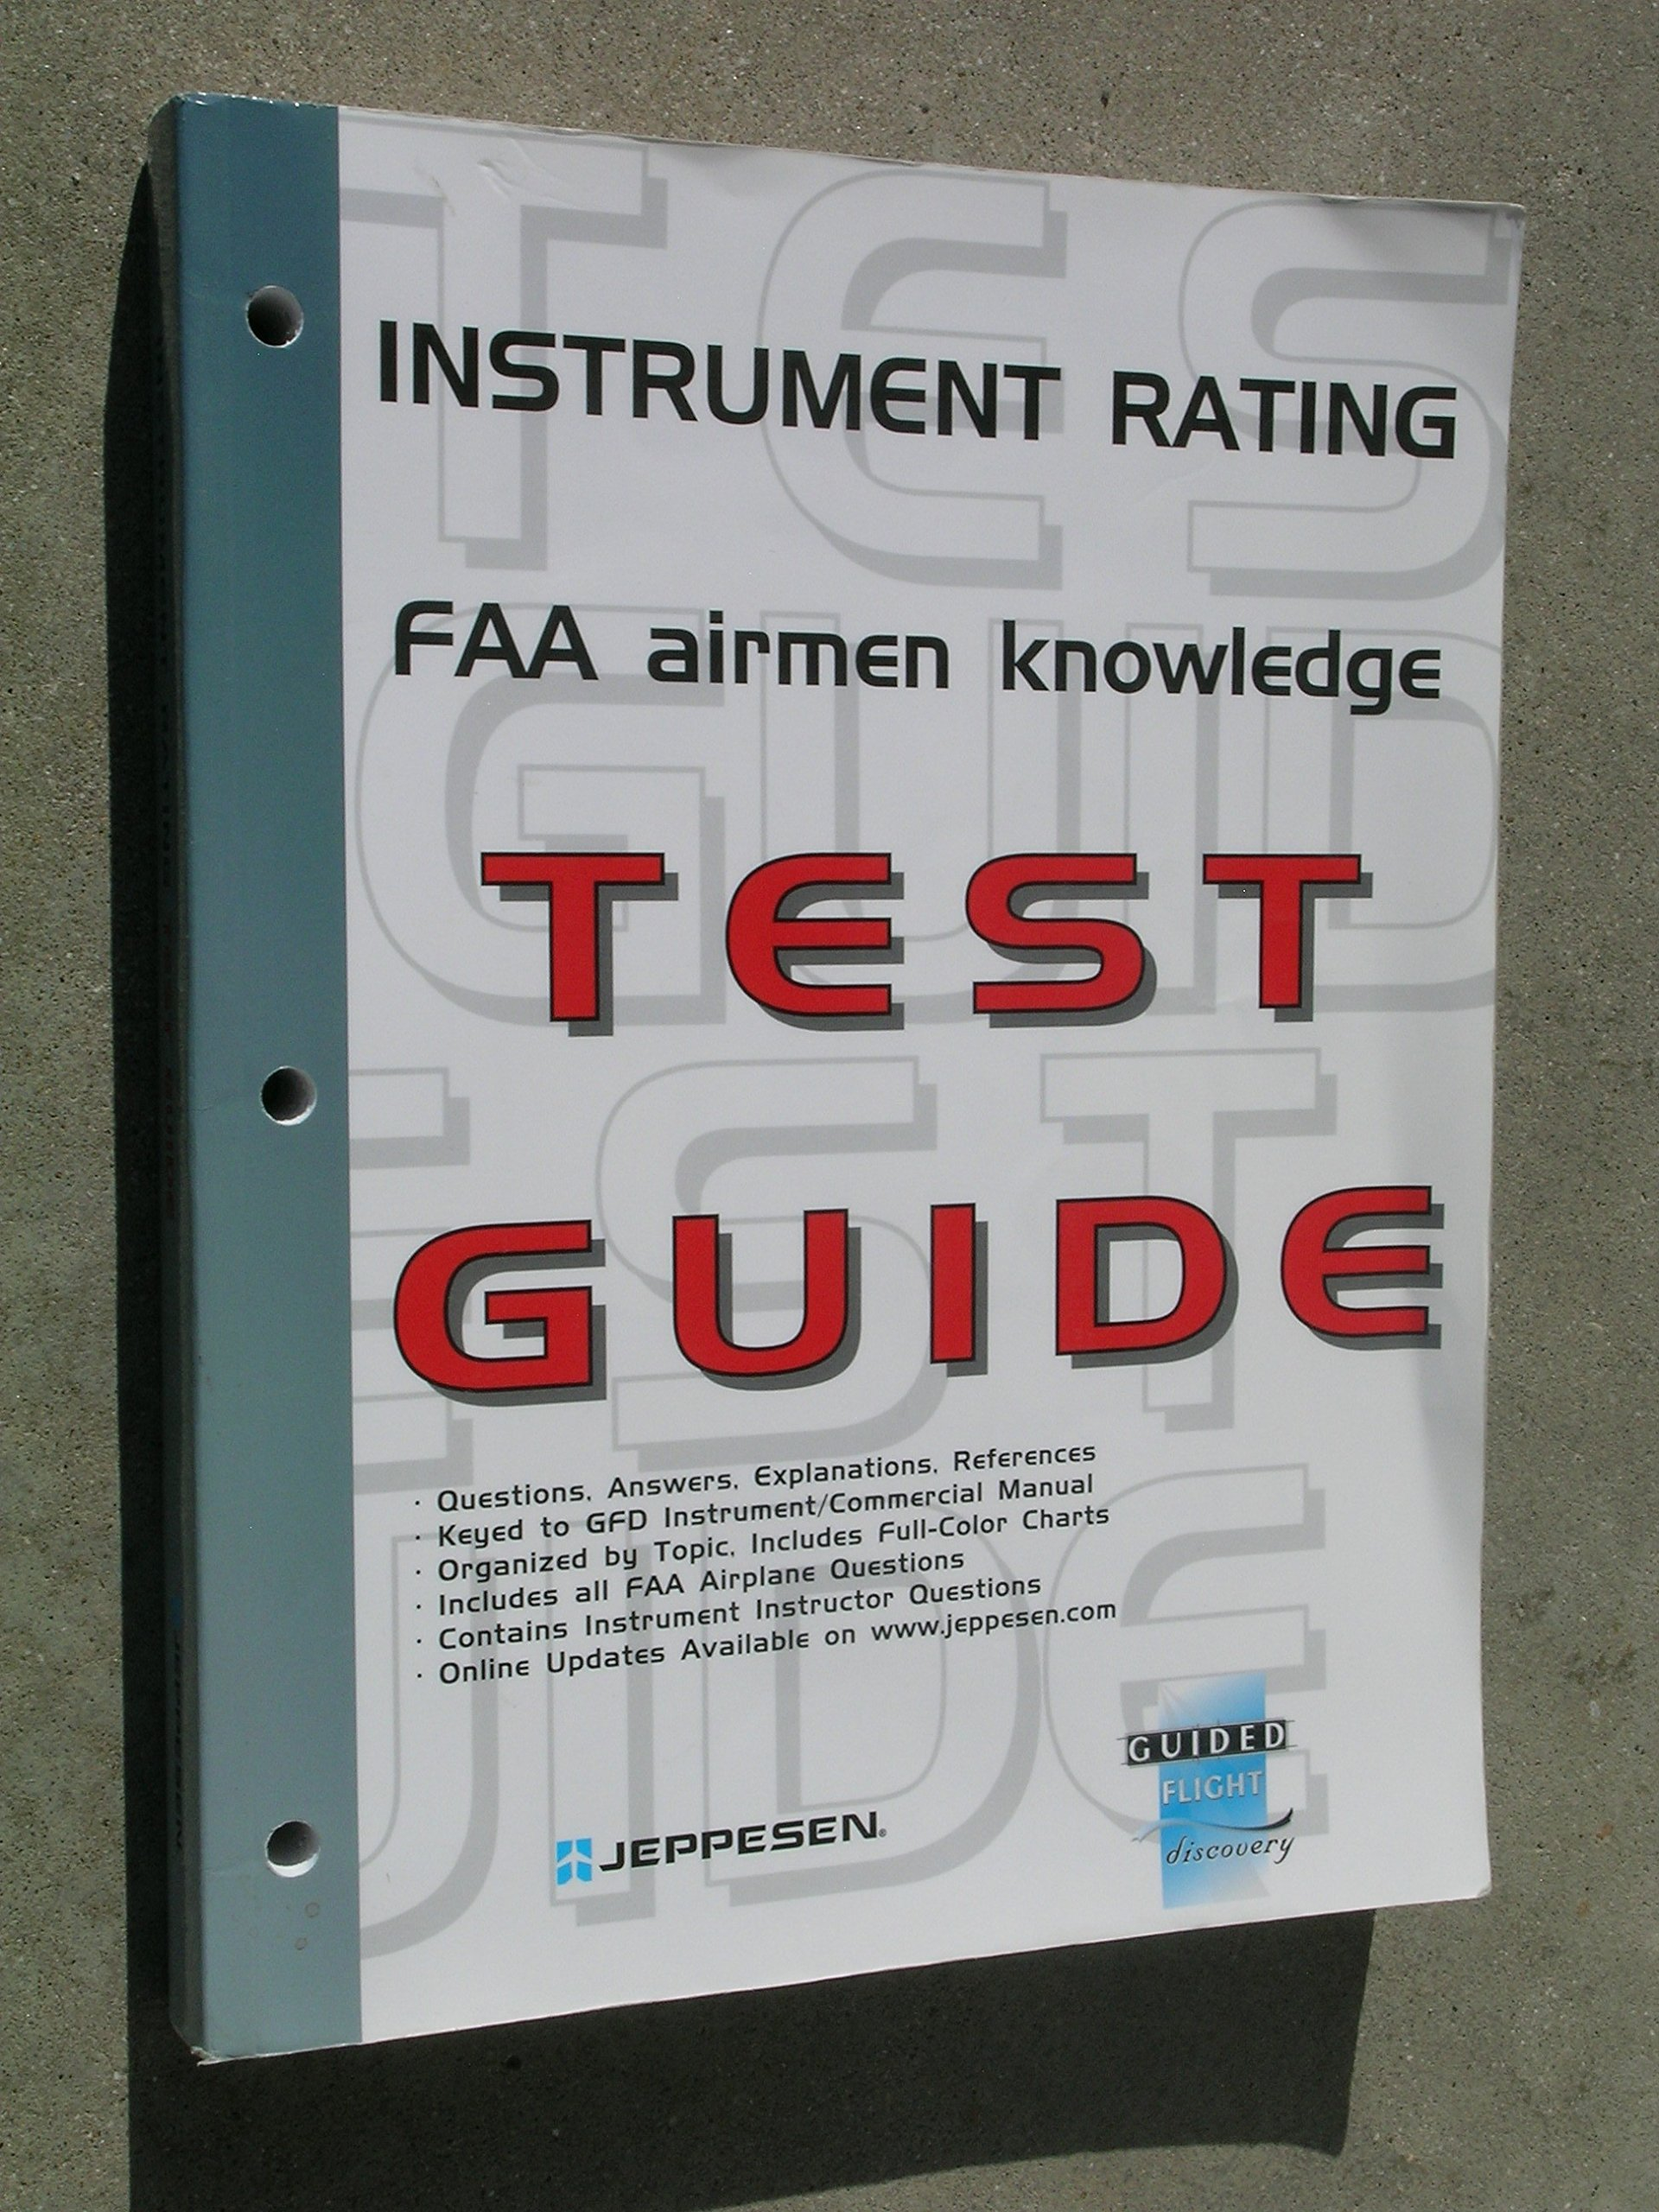 Instrument Pilot Written Exam Study Guide (Pilot Training Series): Jeppesen  Sanderson: 9780884873075: Amazon.com: Books